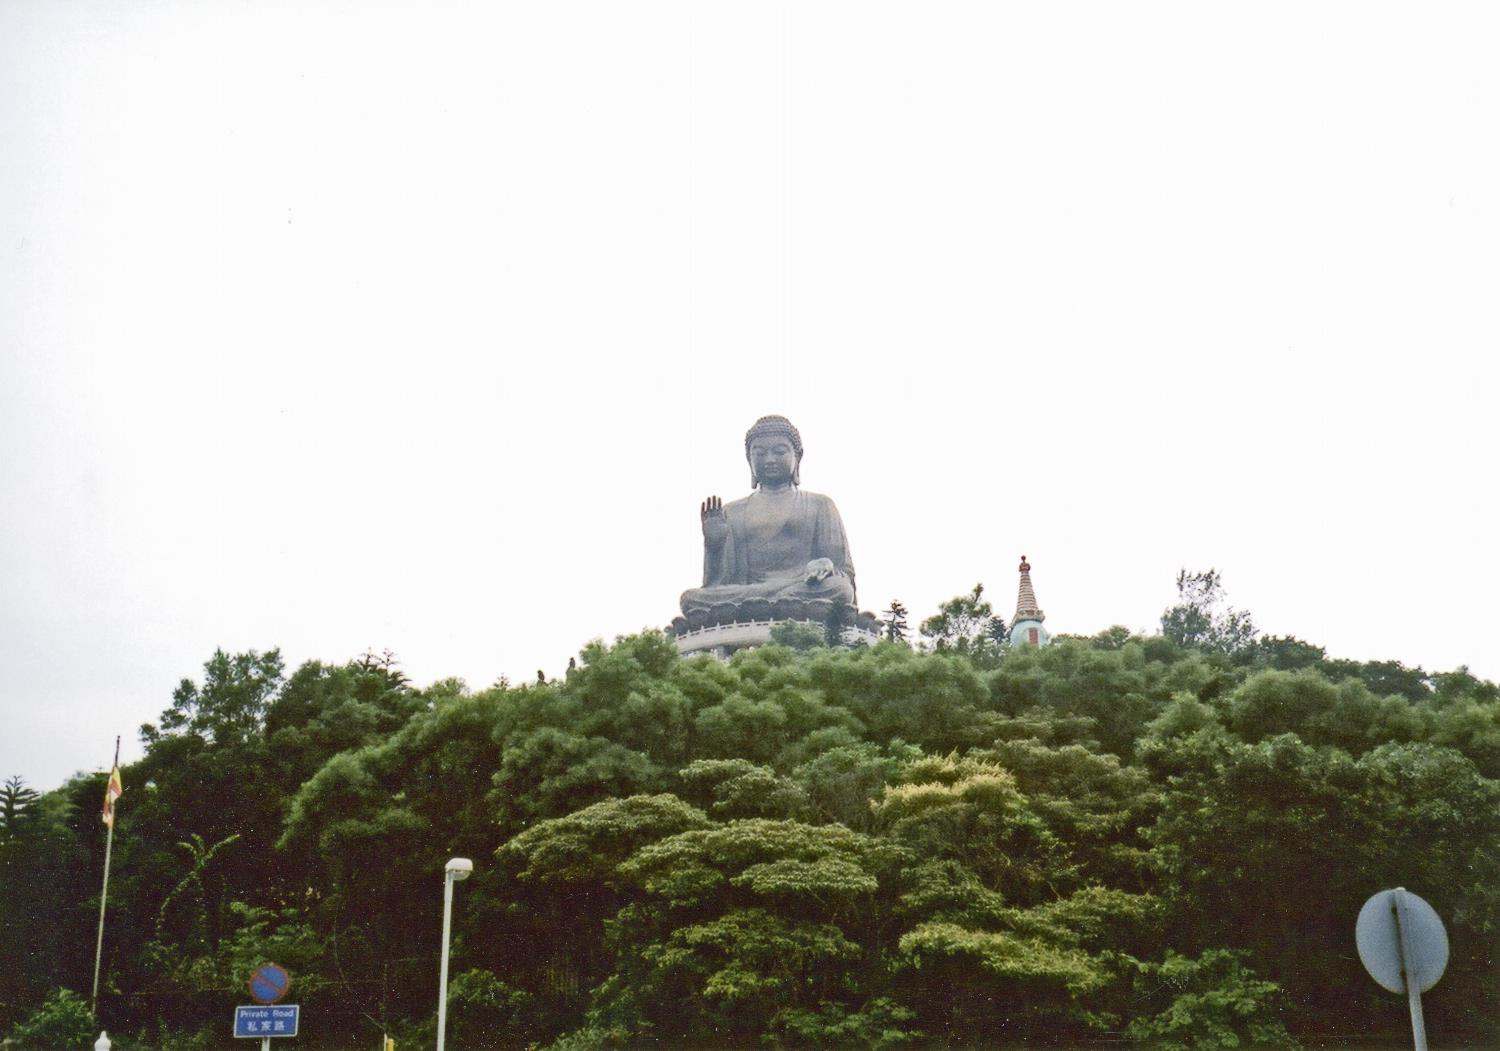 Hong Kong, Lantau Island, The Tian Tan Great Buddha